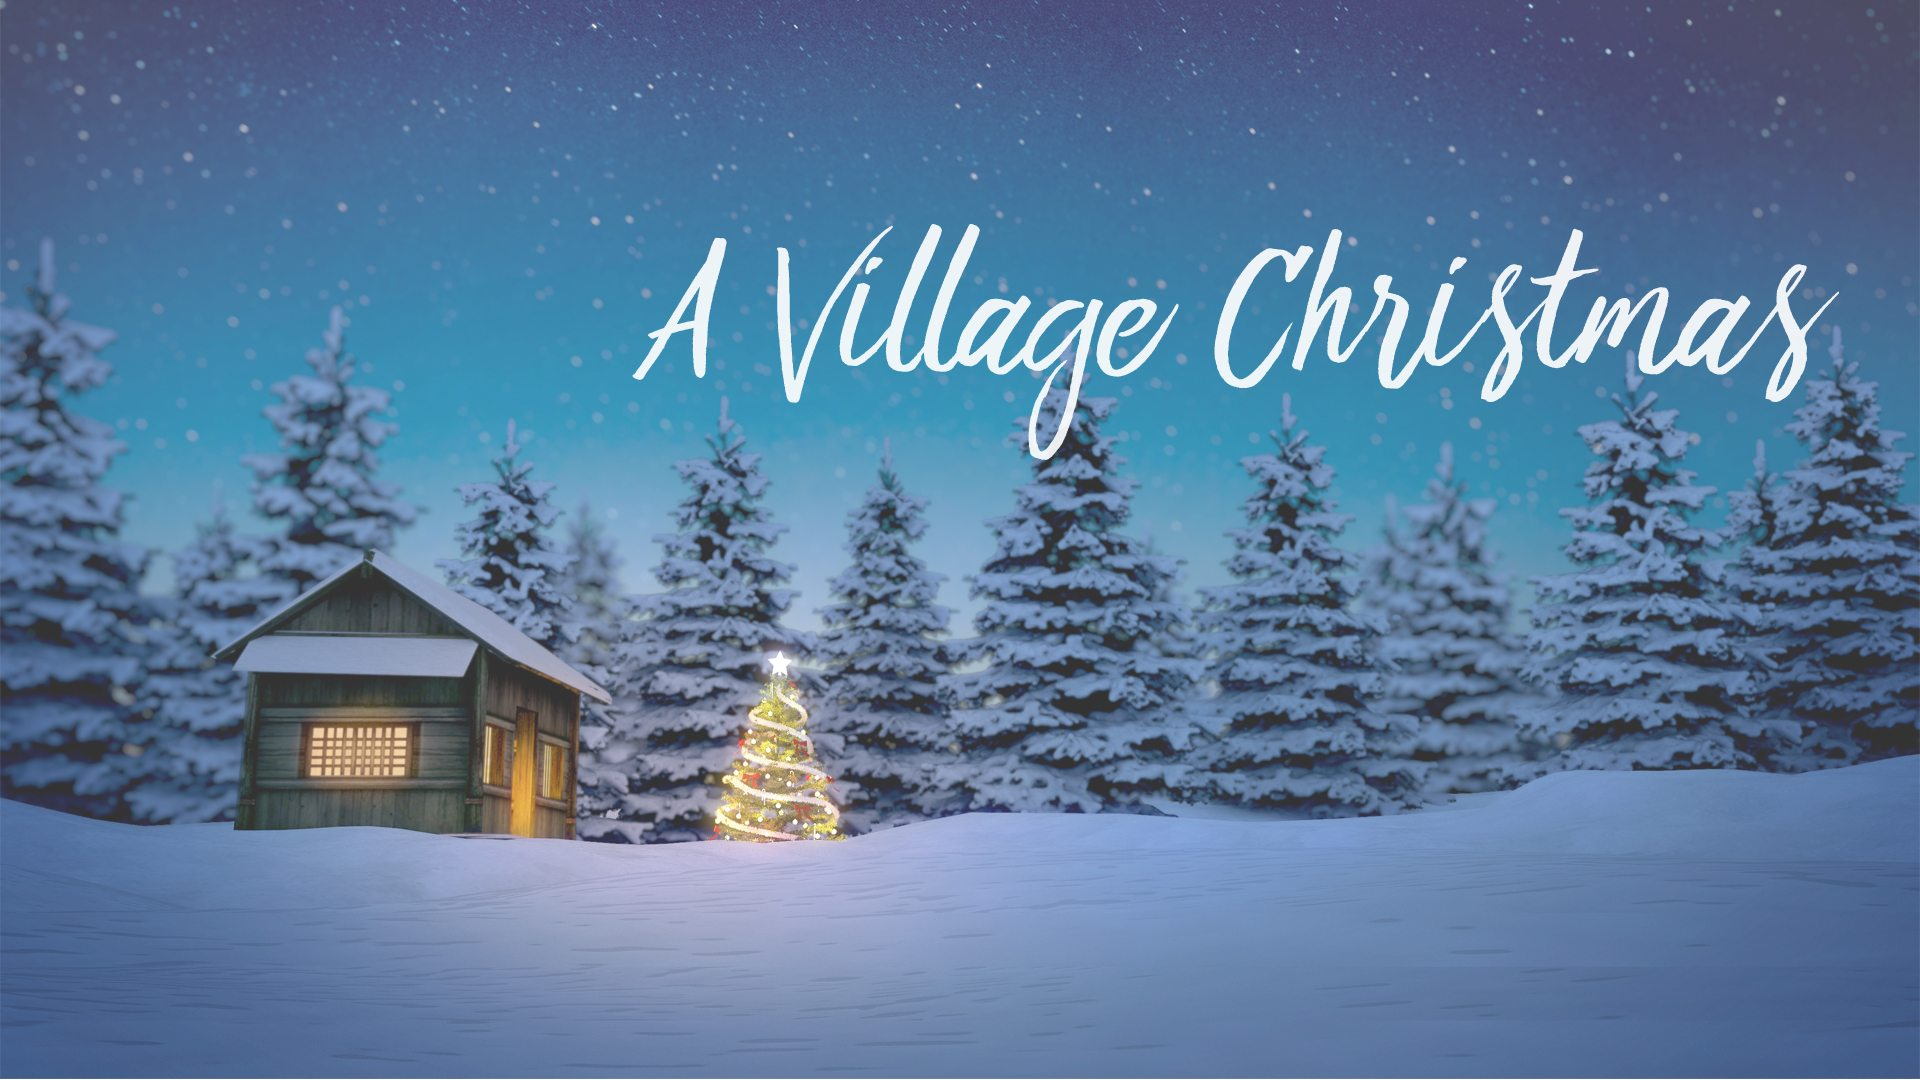 Celebrate a Village Christmas at The Village Christian church in MInooka / Channahon and find out why this time of year is so exciting!